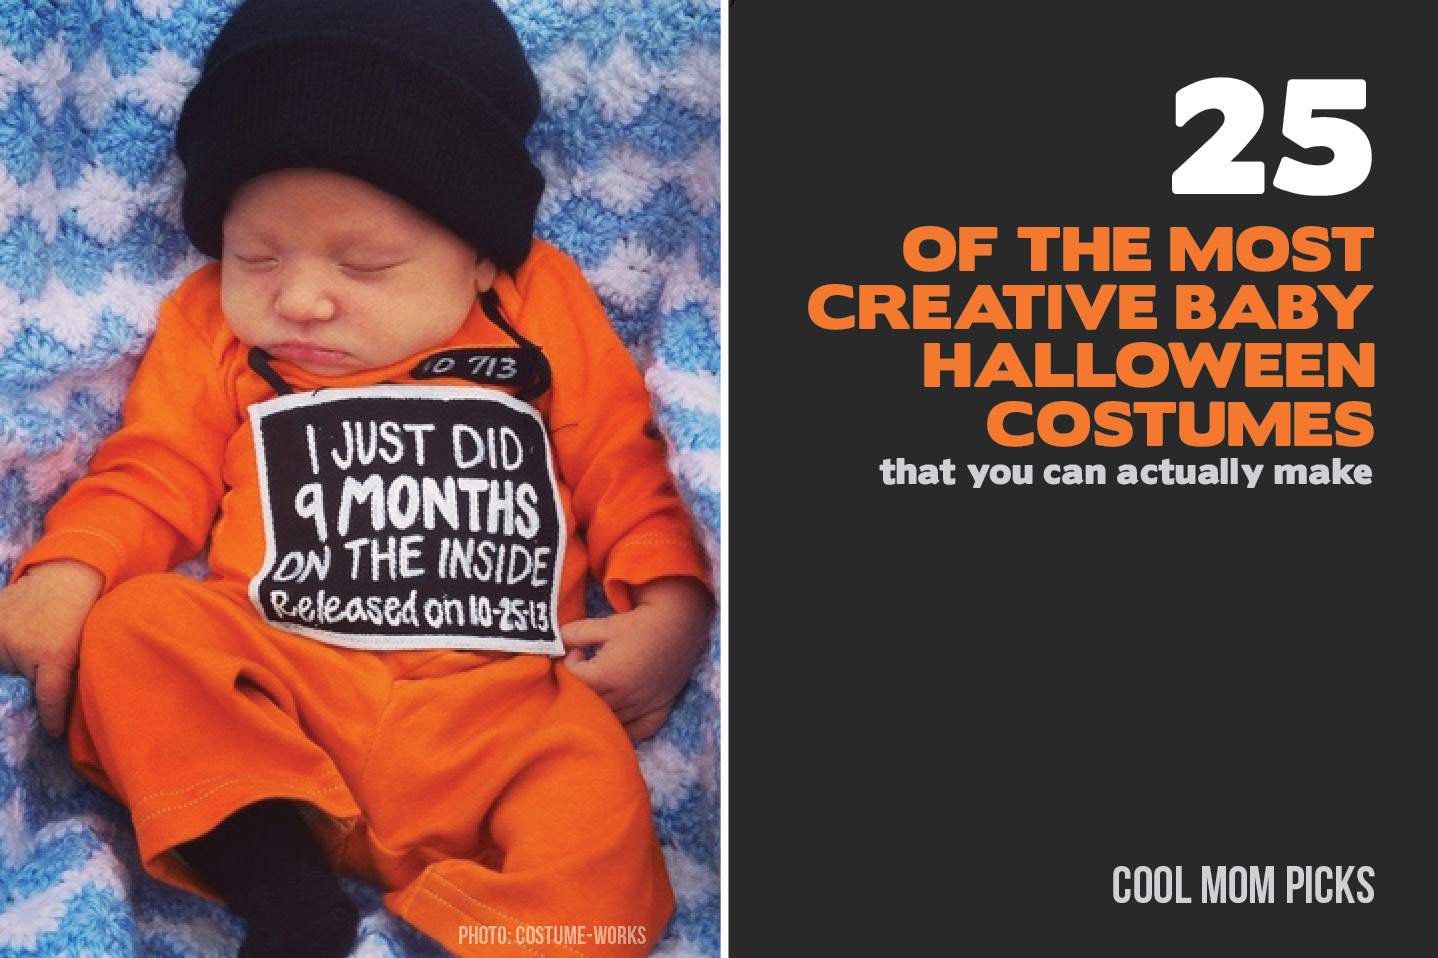 25 of the most adorably creative DIY baby costumes for Halloweenu2026that you can actually  sc 1 st  Cool Mom Picks & 25 of the most adorably creative baby costumes you can DIY